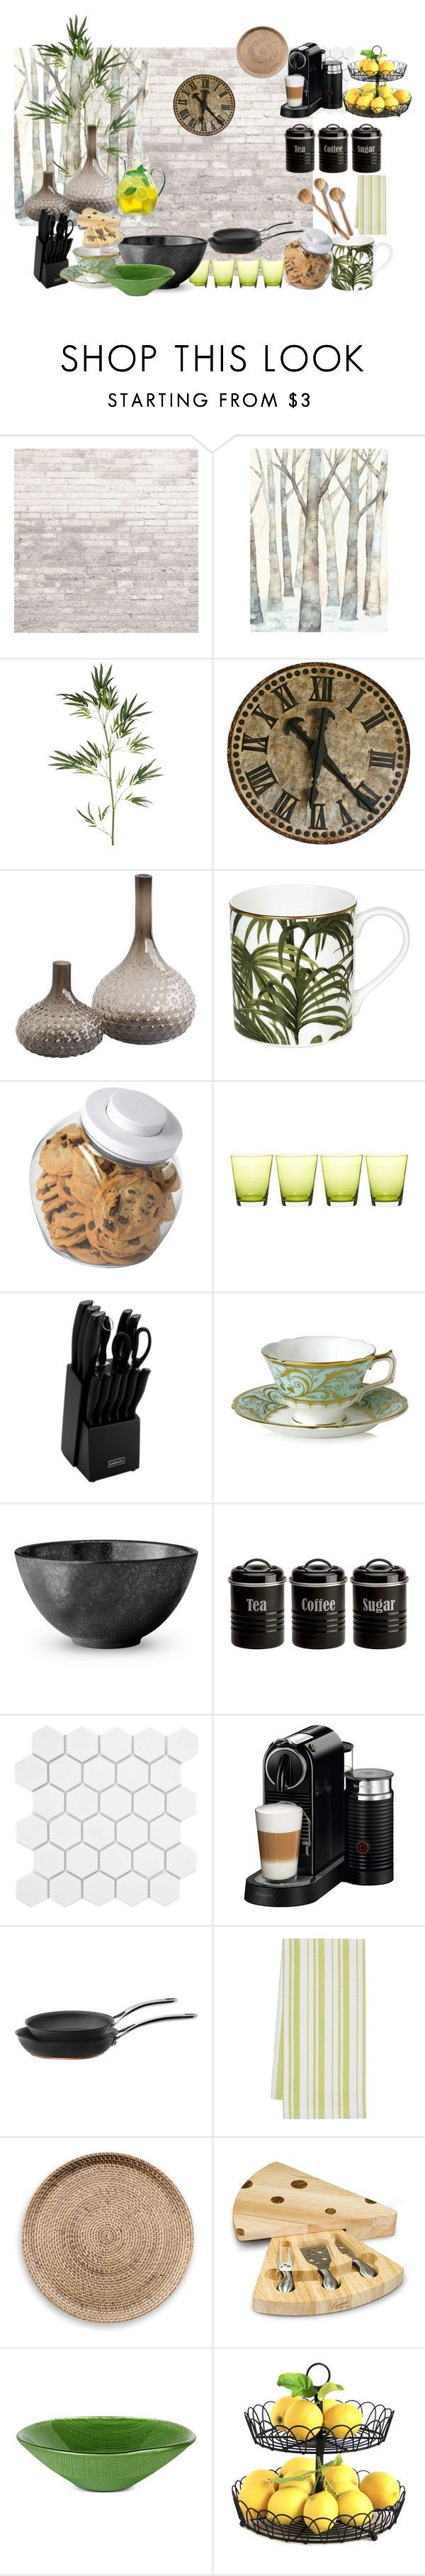 """cocin"" by thais-nc ❤ liked on Polyvore featuring interior, interiors, interior design, home, home decor, interior decorating, WALL, Pier 1 Imports, House of Hackney and OXO"